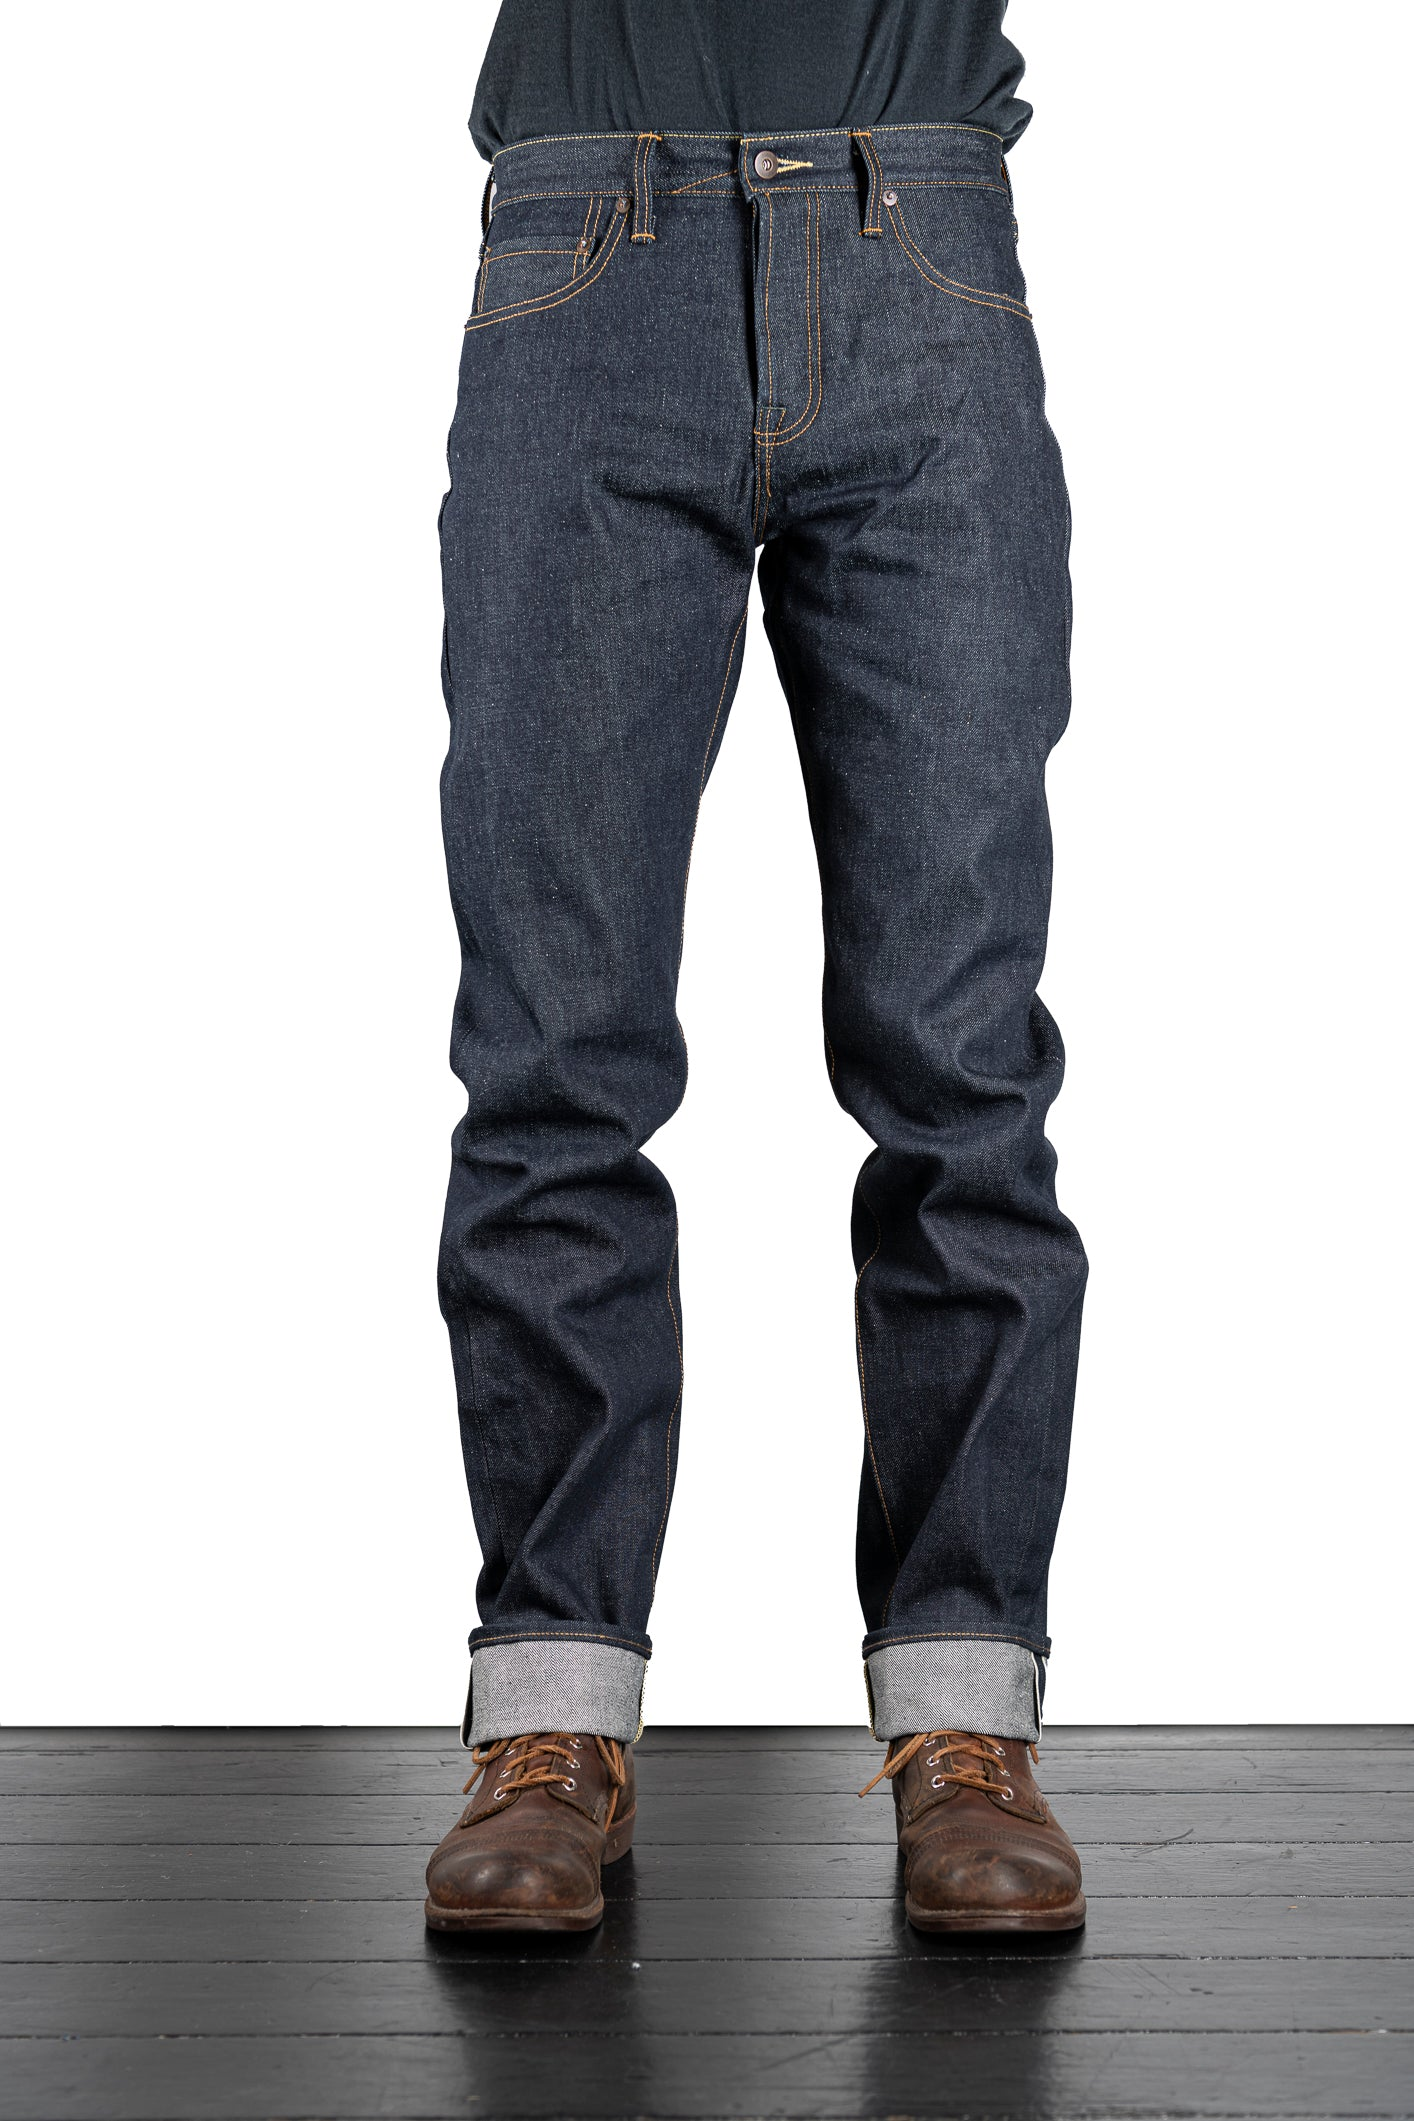 Tellason - Jeans, Sheffield Tapered, 16.5 oz denim